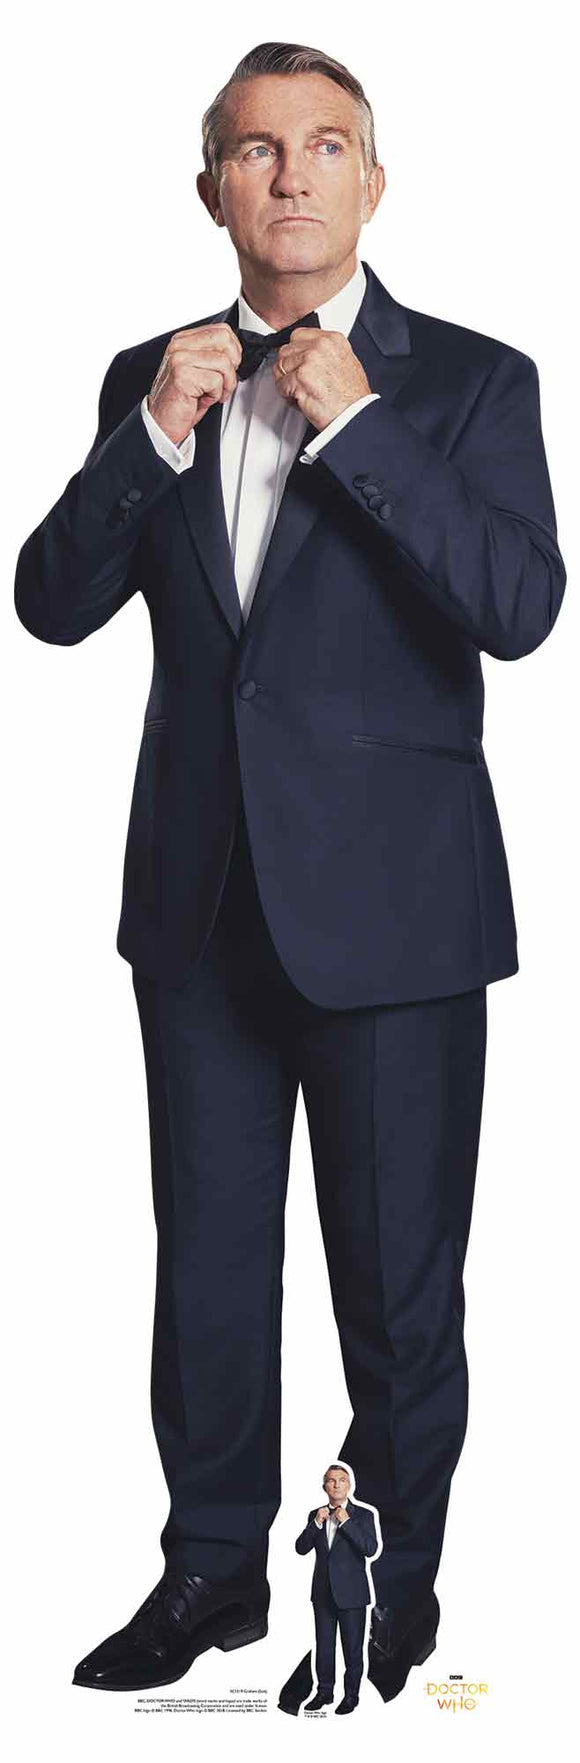 Bradley Walsh Graham Spyfall Suit Doctor Who Lifesize Cardboard Cutout